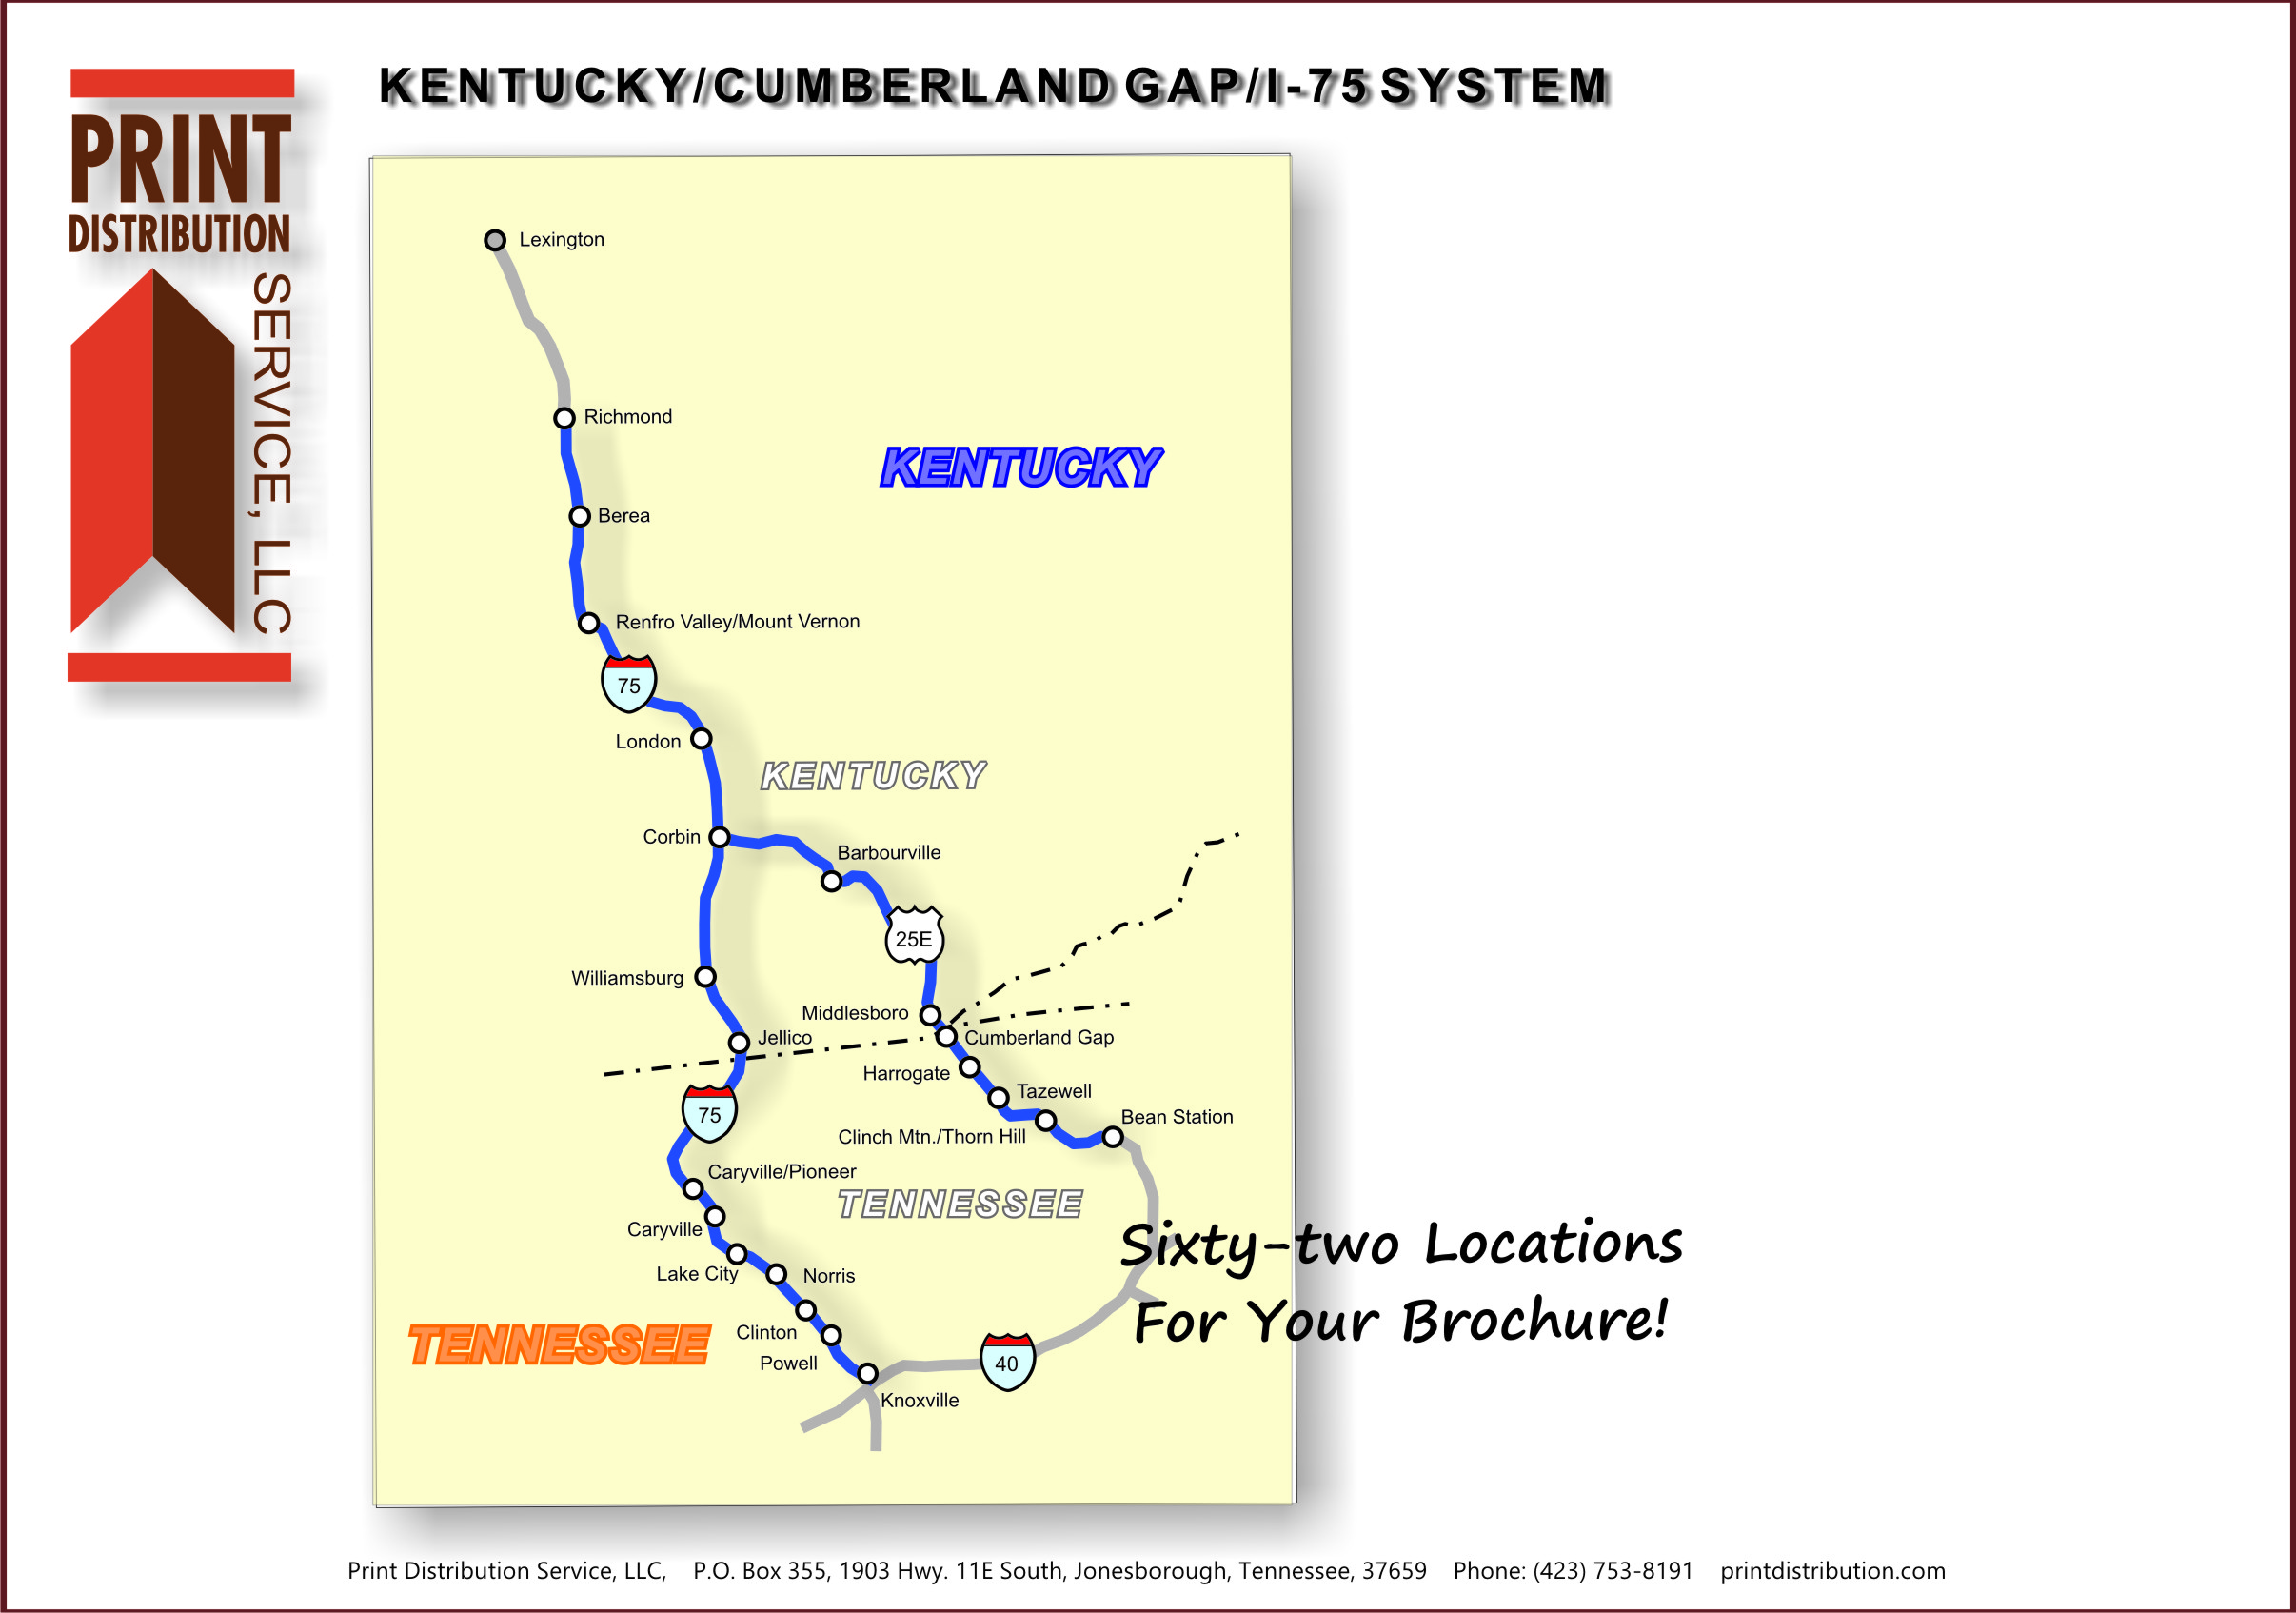 Kentucky Cumberland Gap System